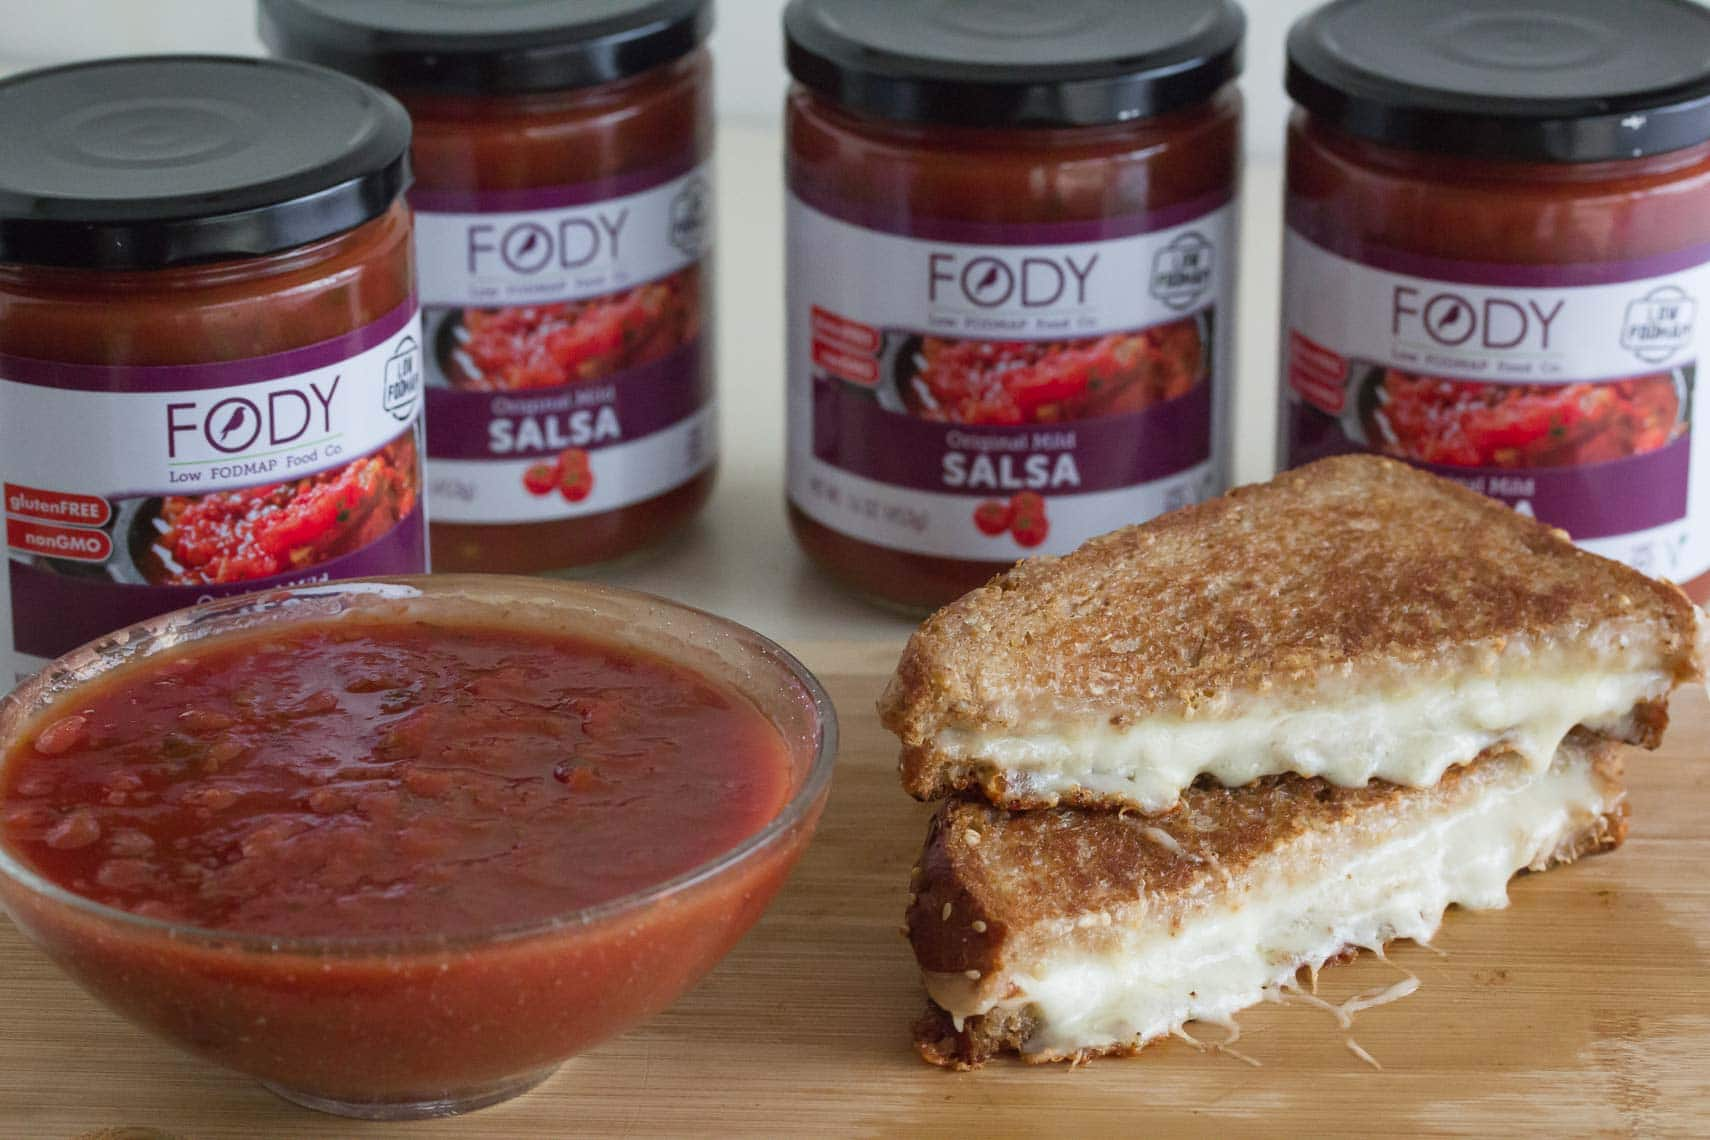 FODY salsa with grilled cheese